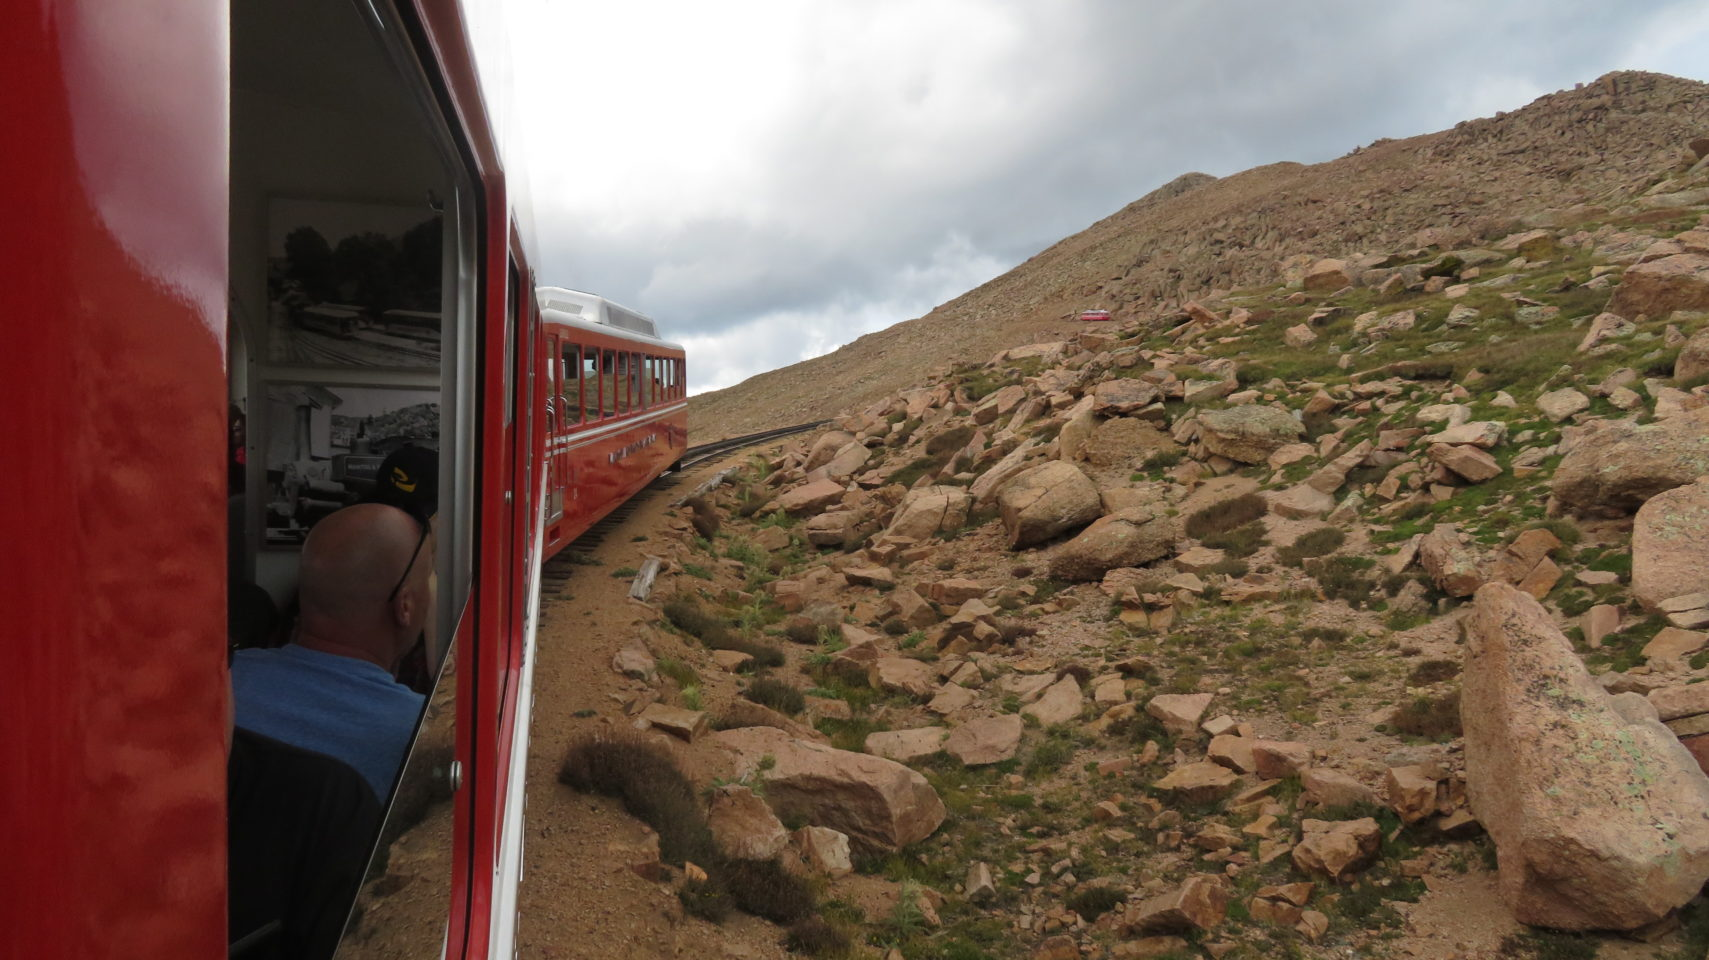 Climbing the steep slopes of Pikes Peak abaord the Pikes Peak Cog Railway !